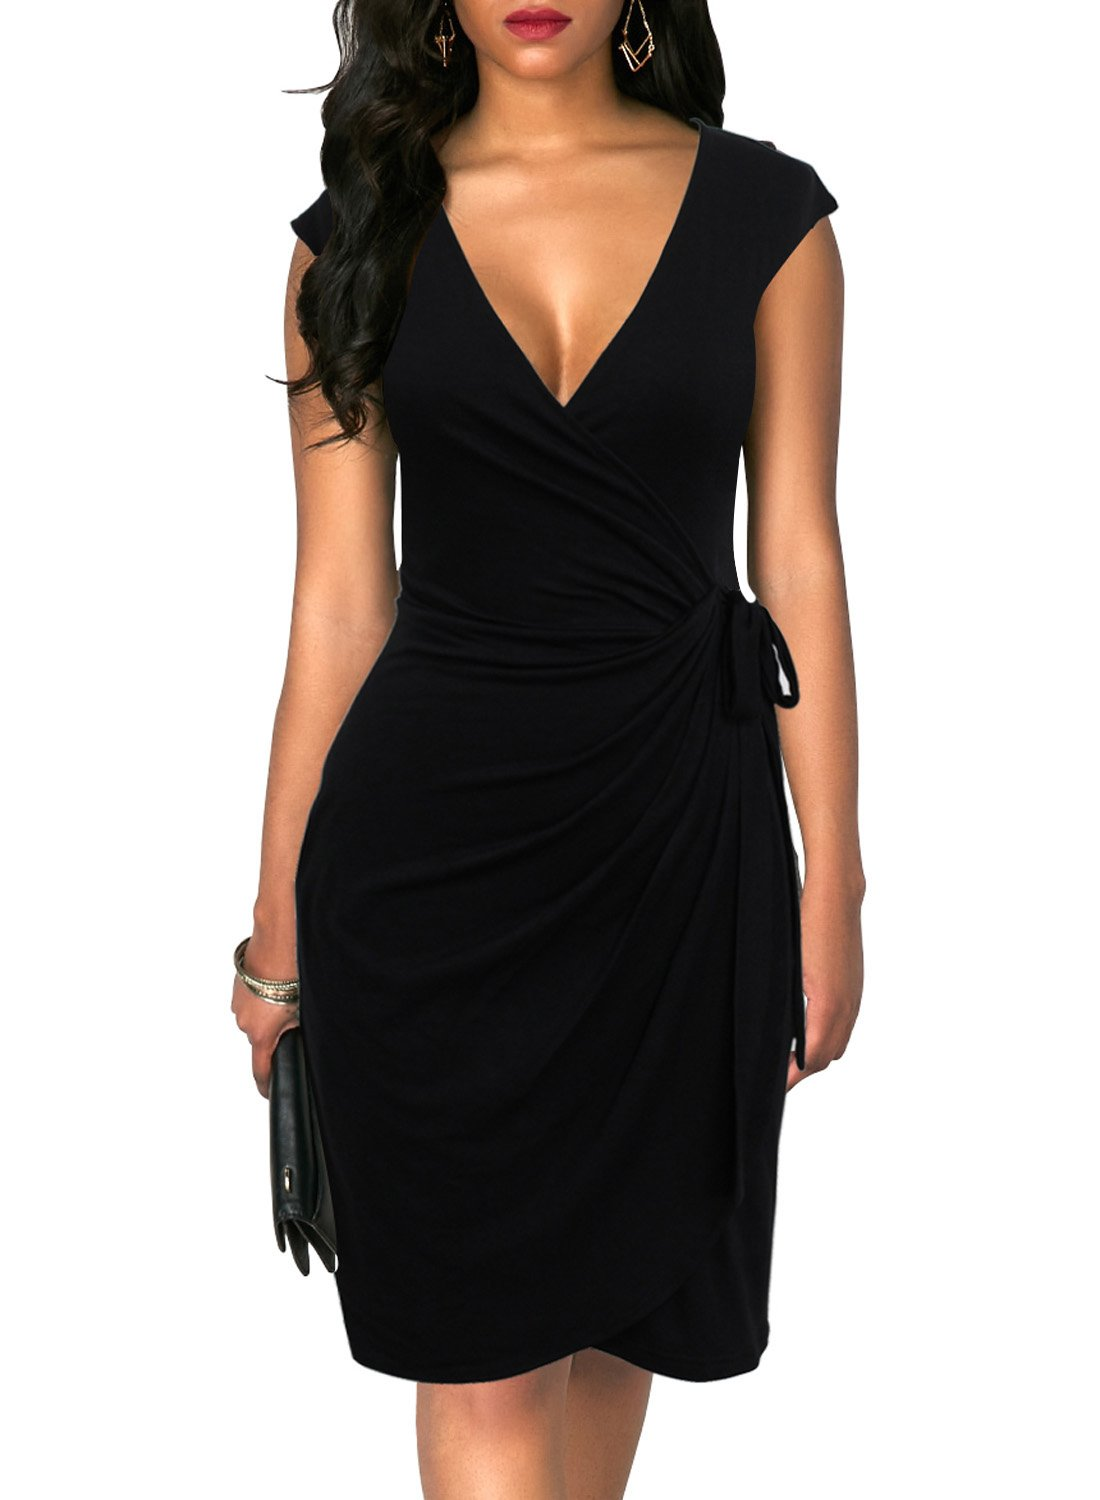 Berydress Women's Vintage V-Neck Sheath Casual Party Work Faux Black Wrap Dress